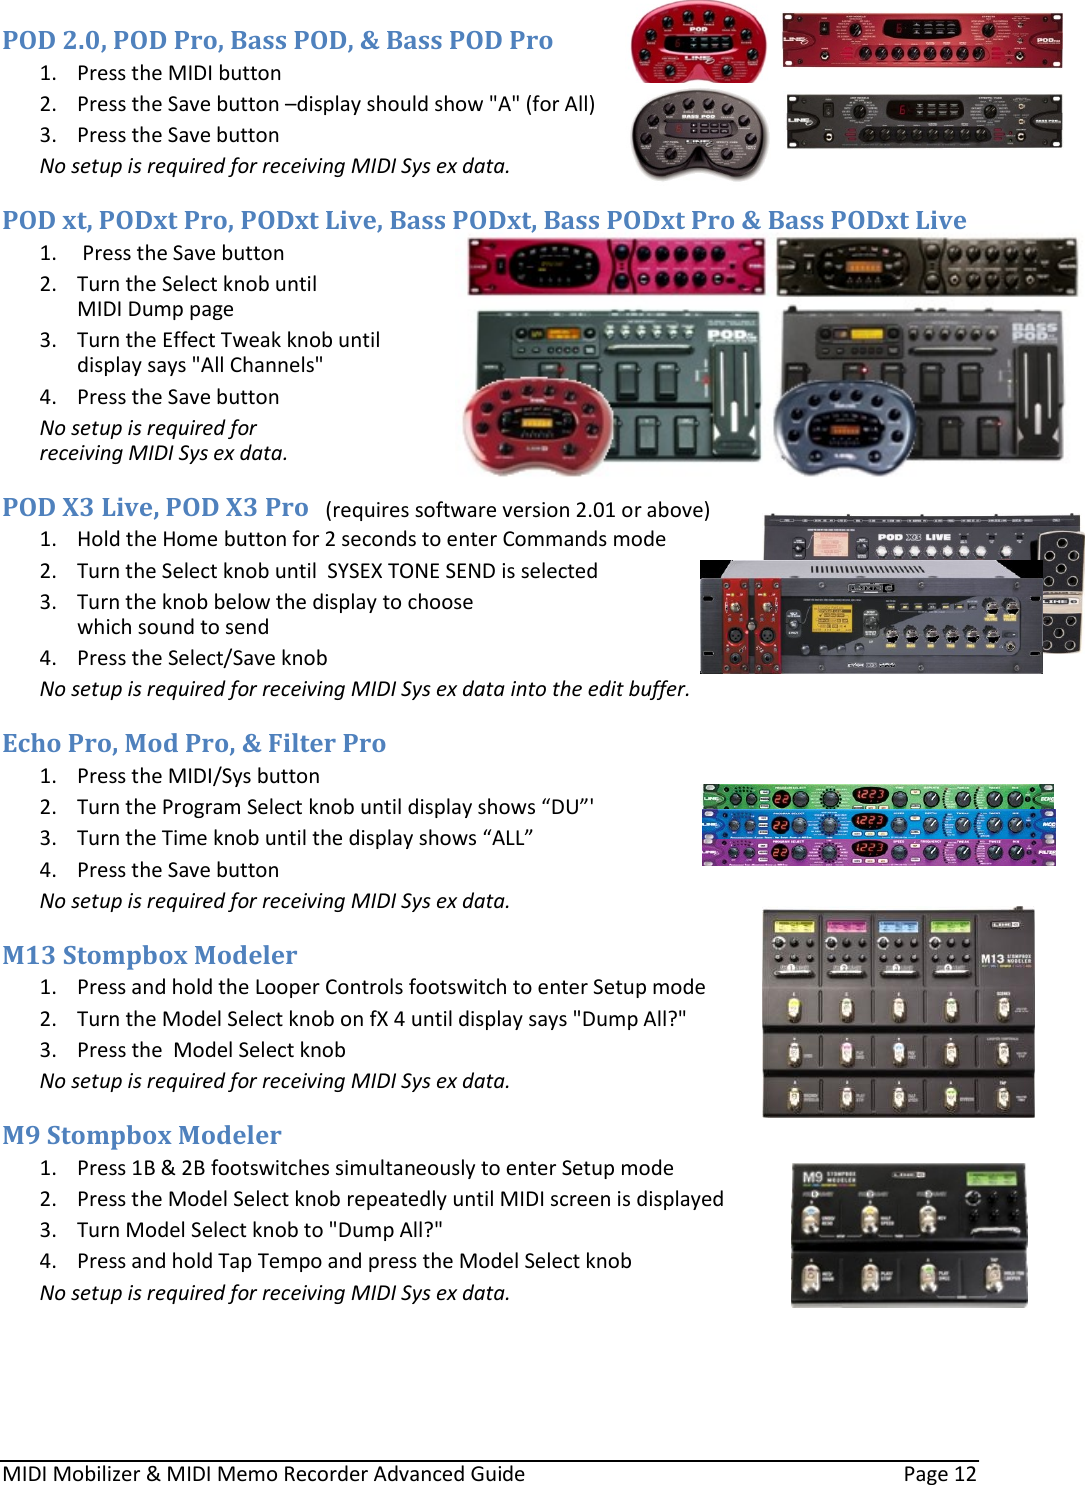 Line 6 Midi Mobilizer Owners Manual